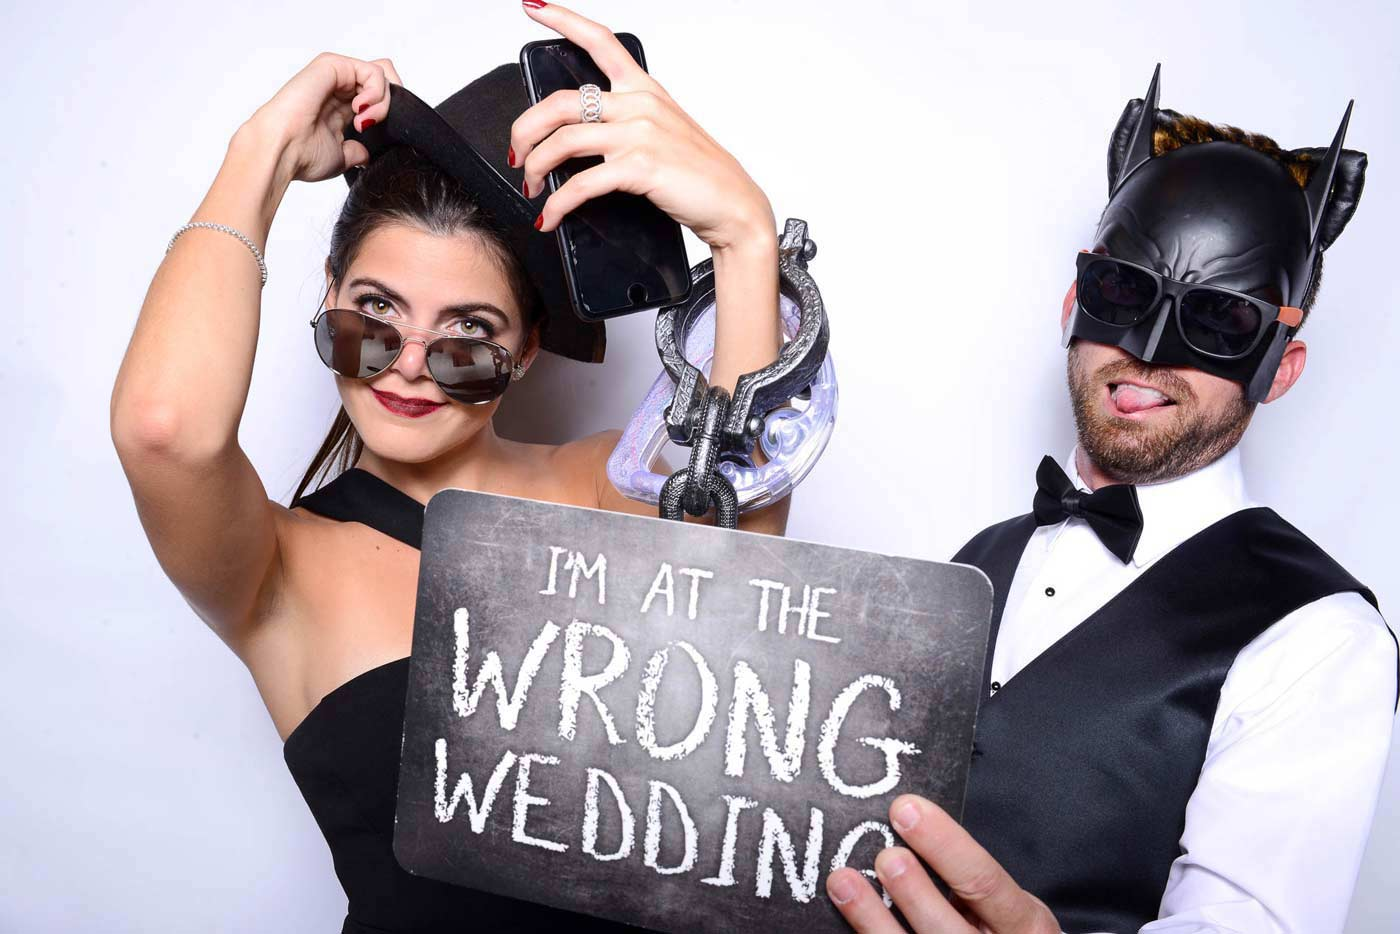 """Belleair Photo Booth with a sign that reads """"I am at the wrong wedding"""""""